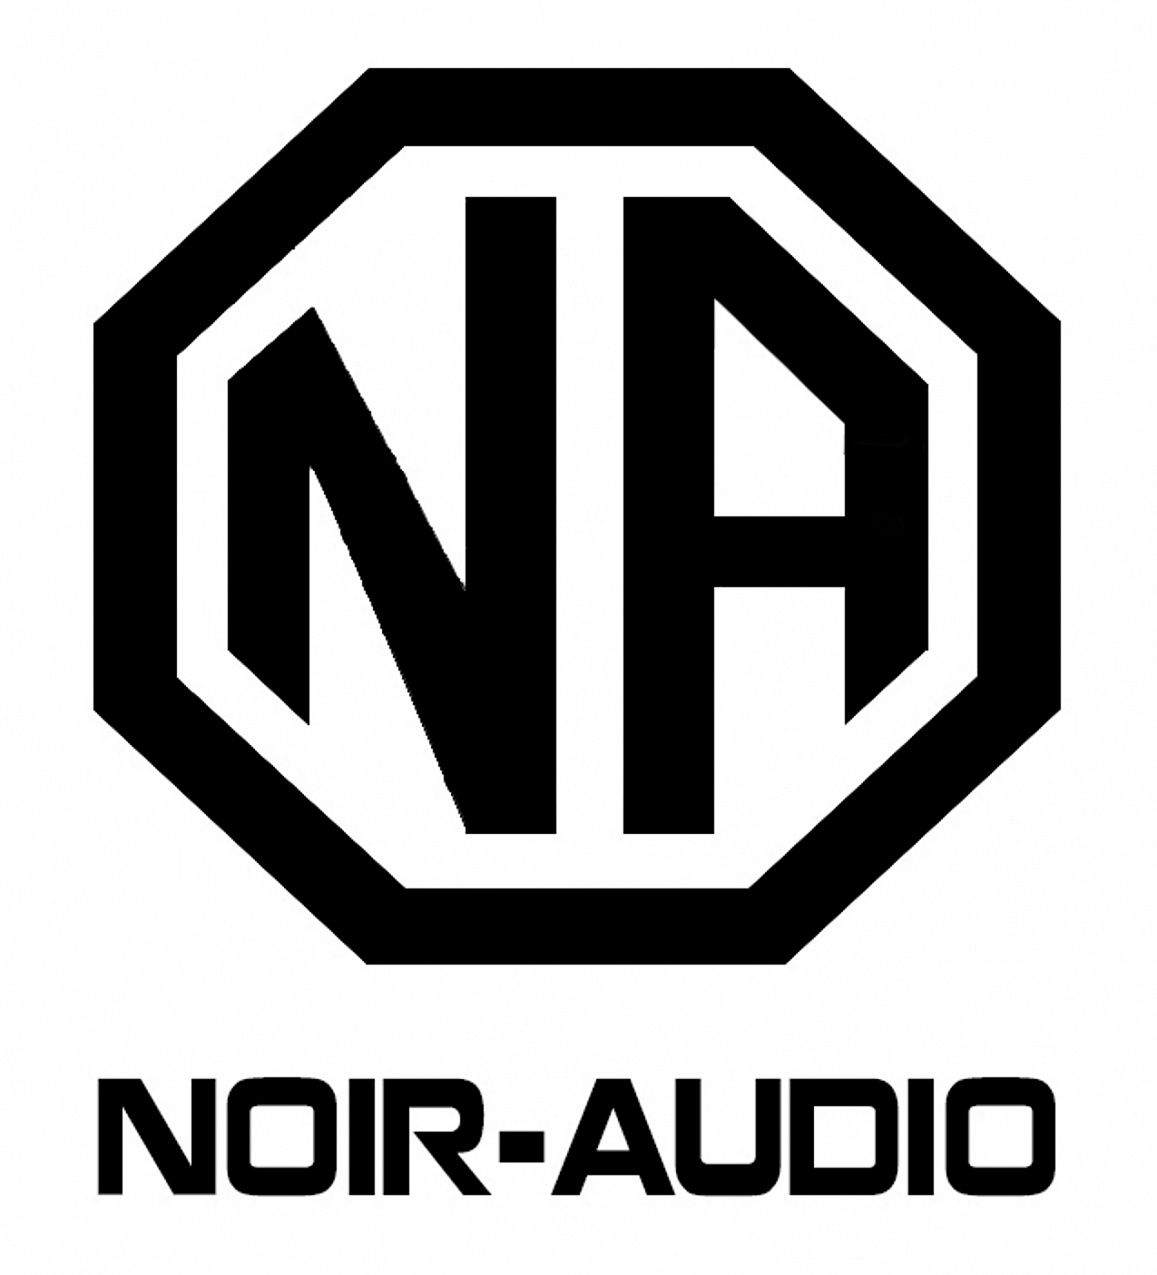 NOIR-audio